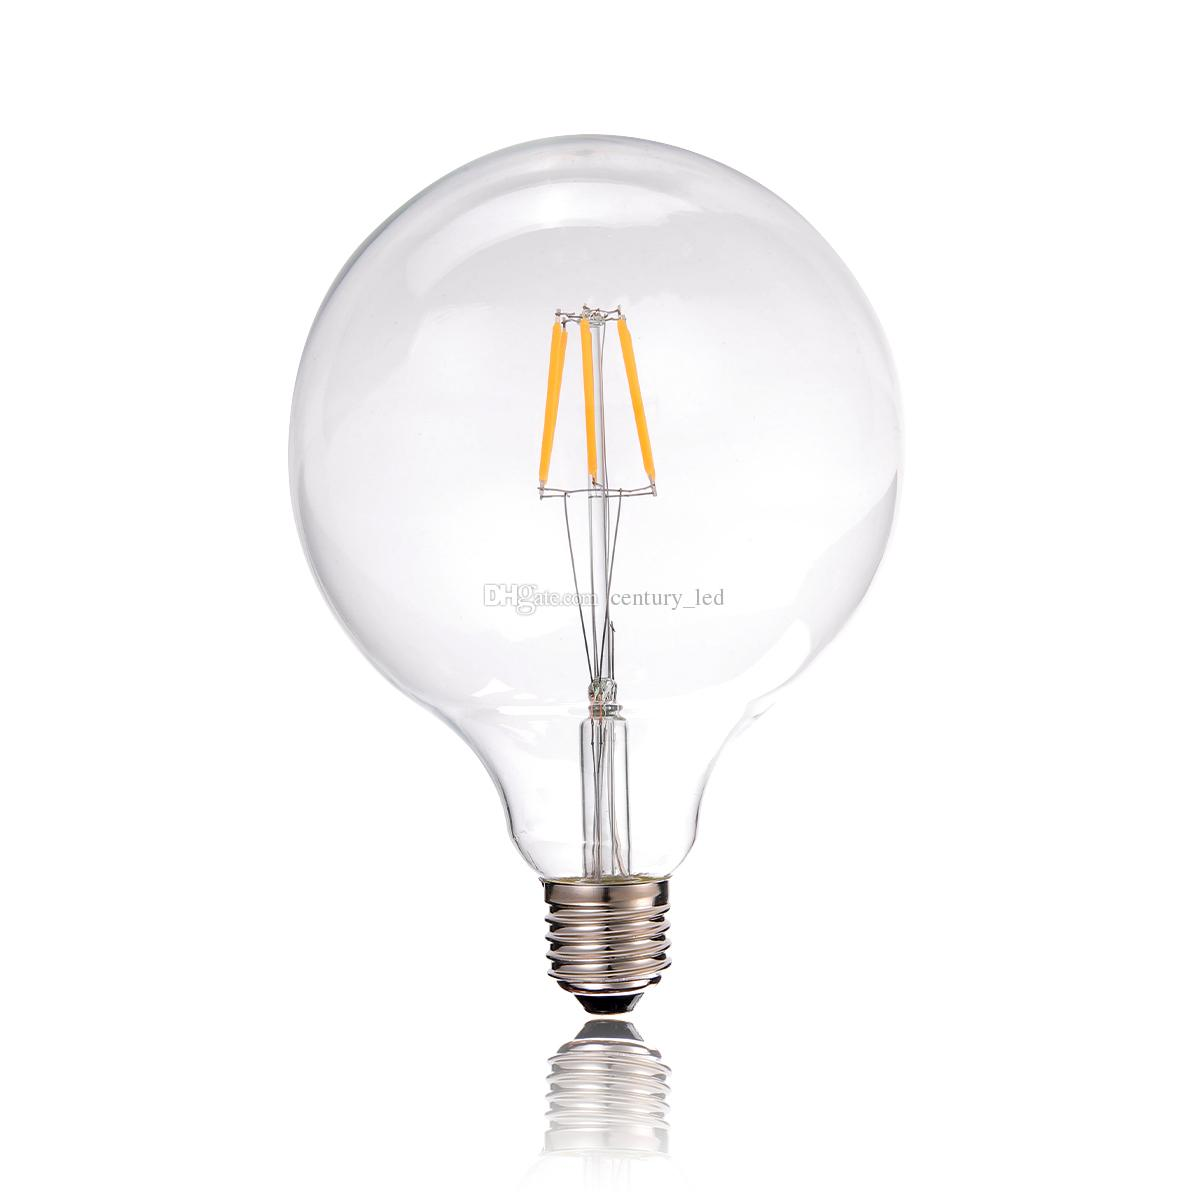 Vintage Led Filament Light Bulb 6w Edison G125 Globe Style Soft White 110 240v E26 E27 Medium